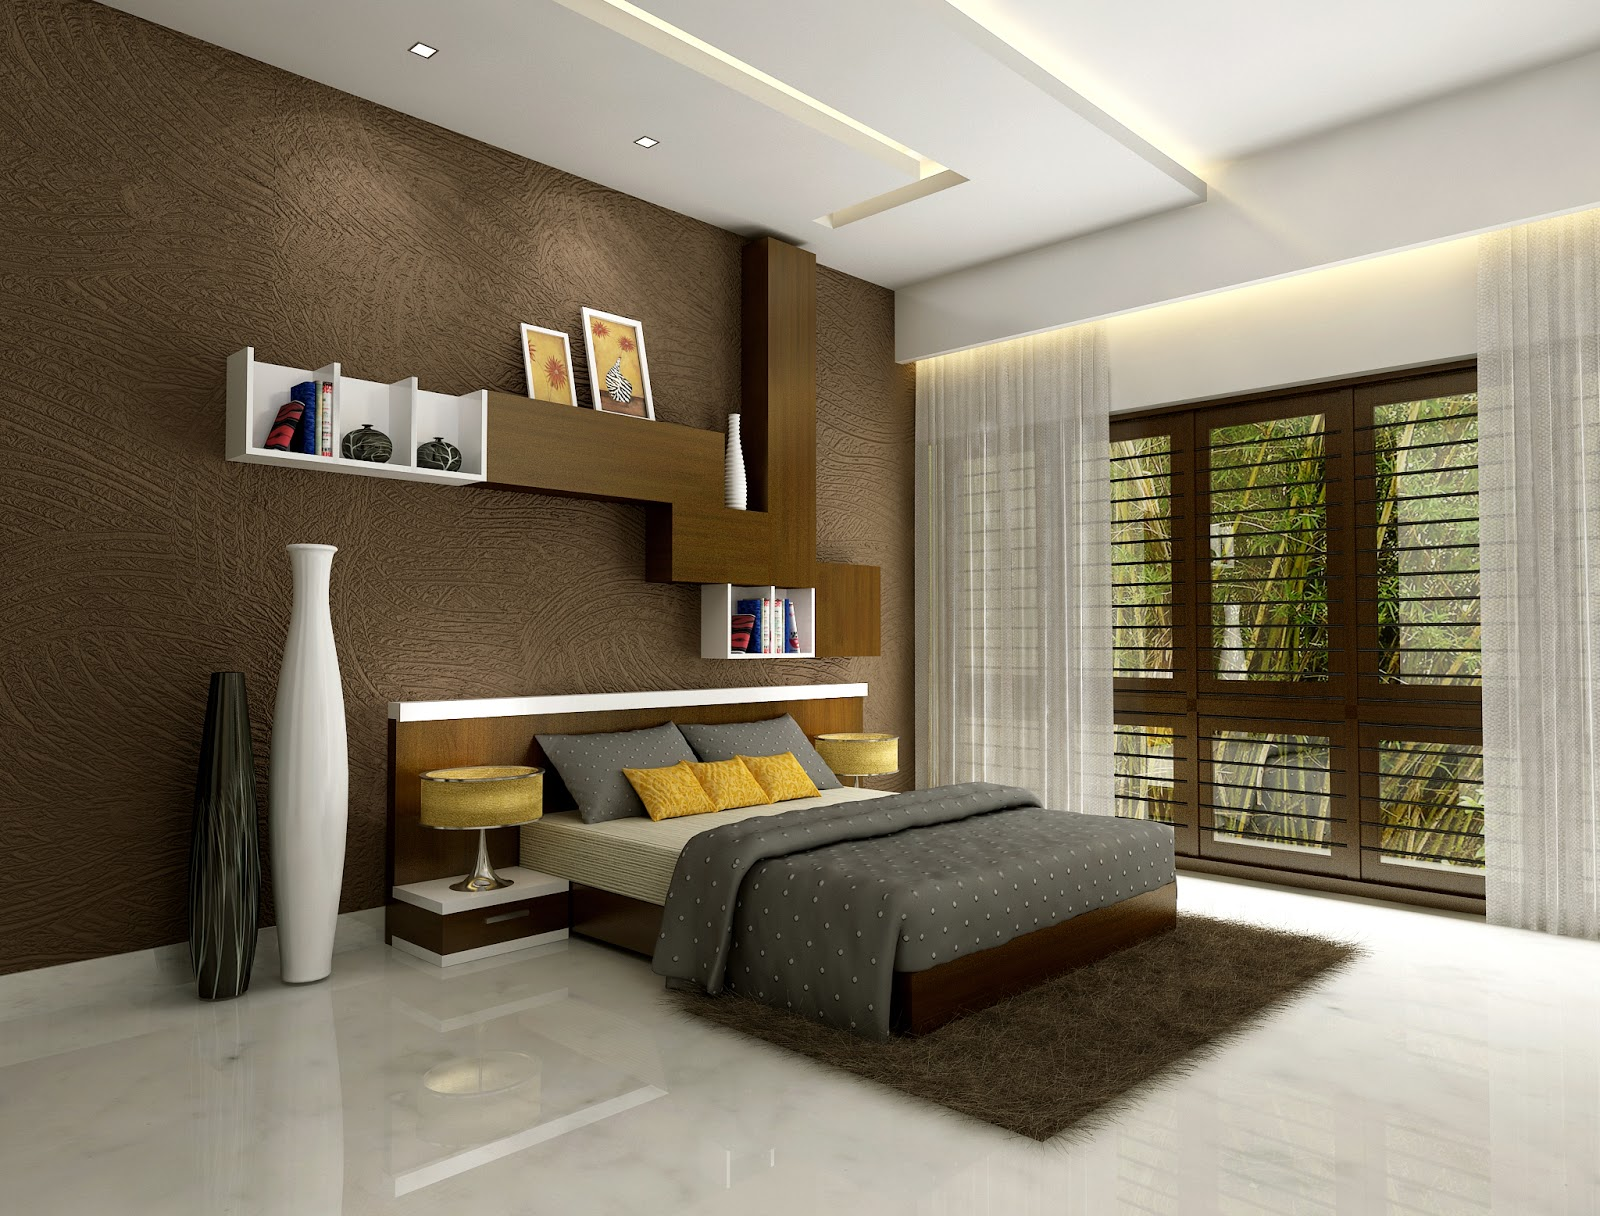 25 Best Small Living Room Decor And Design Ideas For 2019: 25 Best Modern Bedroom Designs